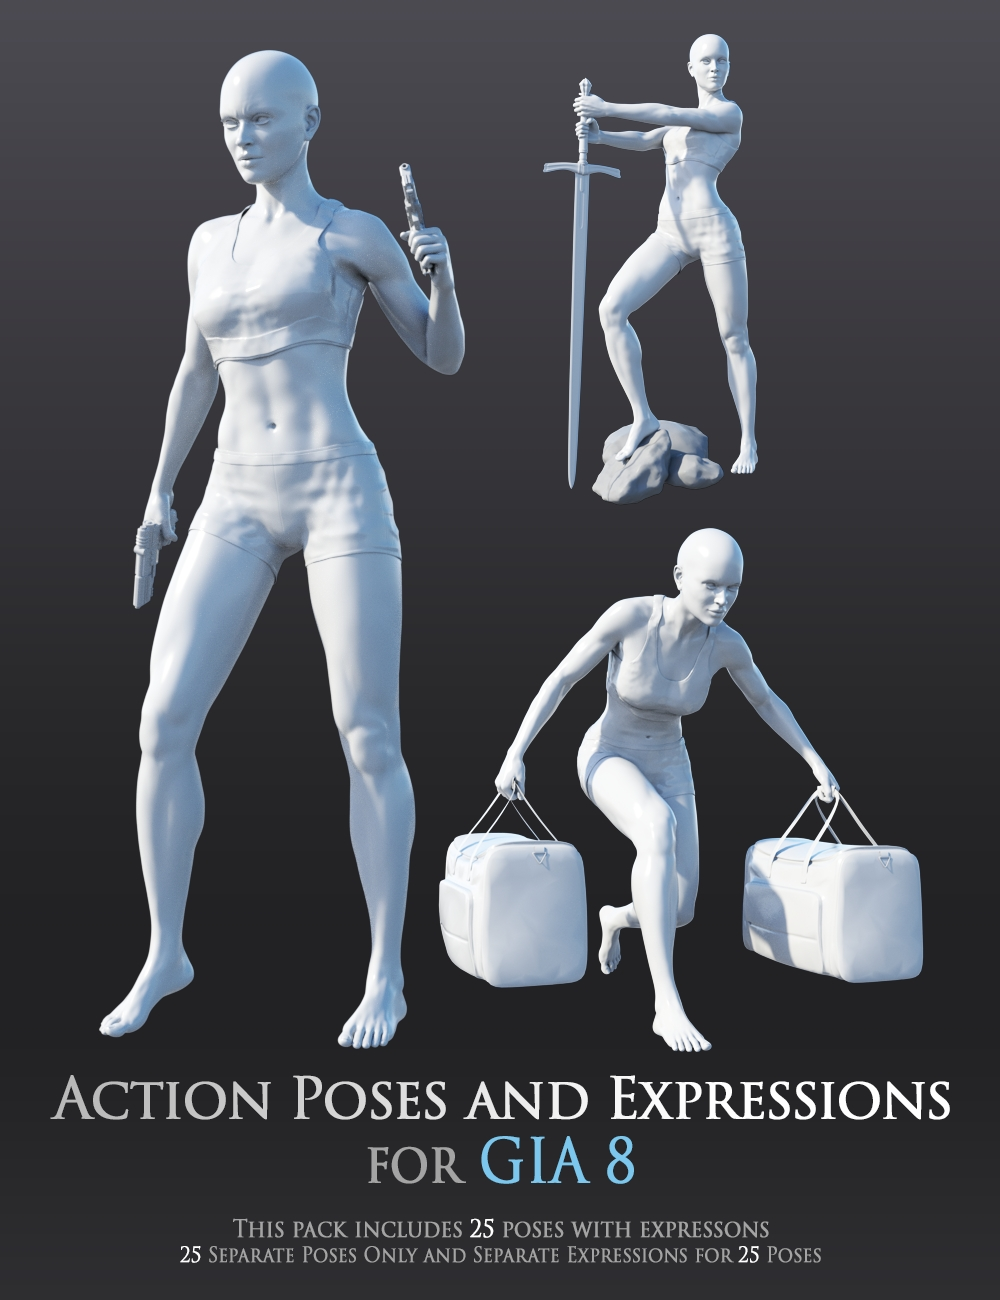 Action Poses and Expressions for Gia 8 by: Andrey Pestryakov, 3D Models by Daz 3D